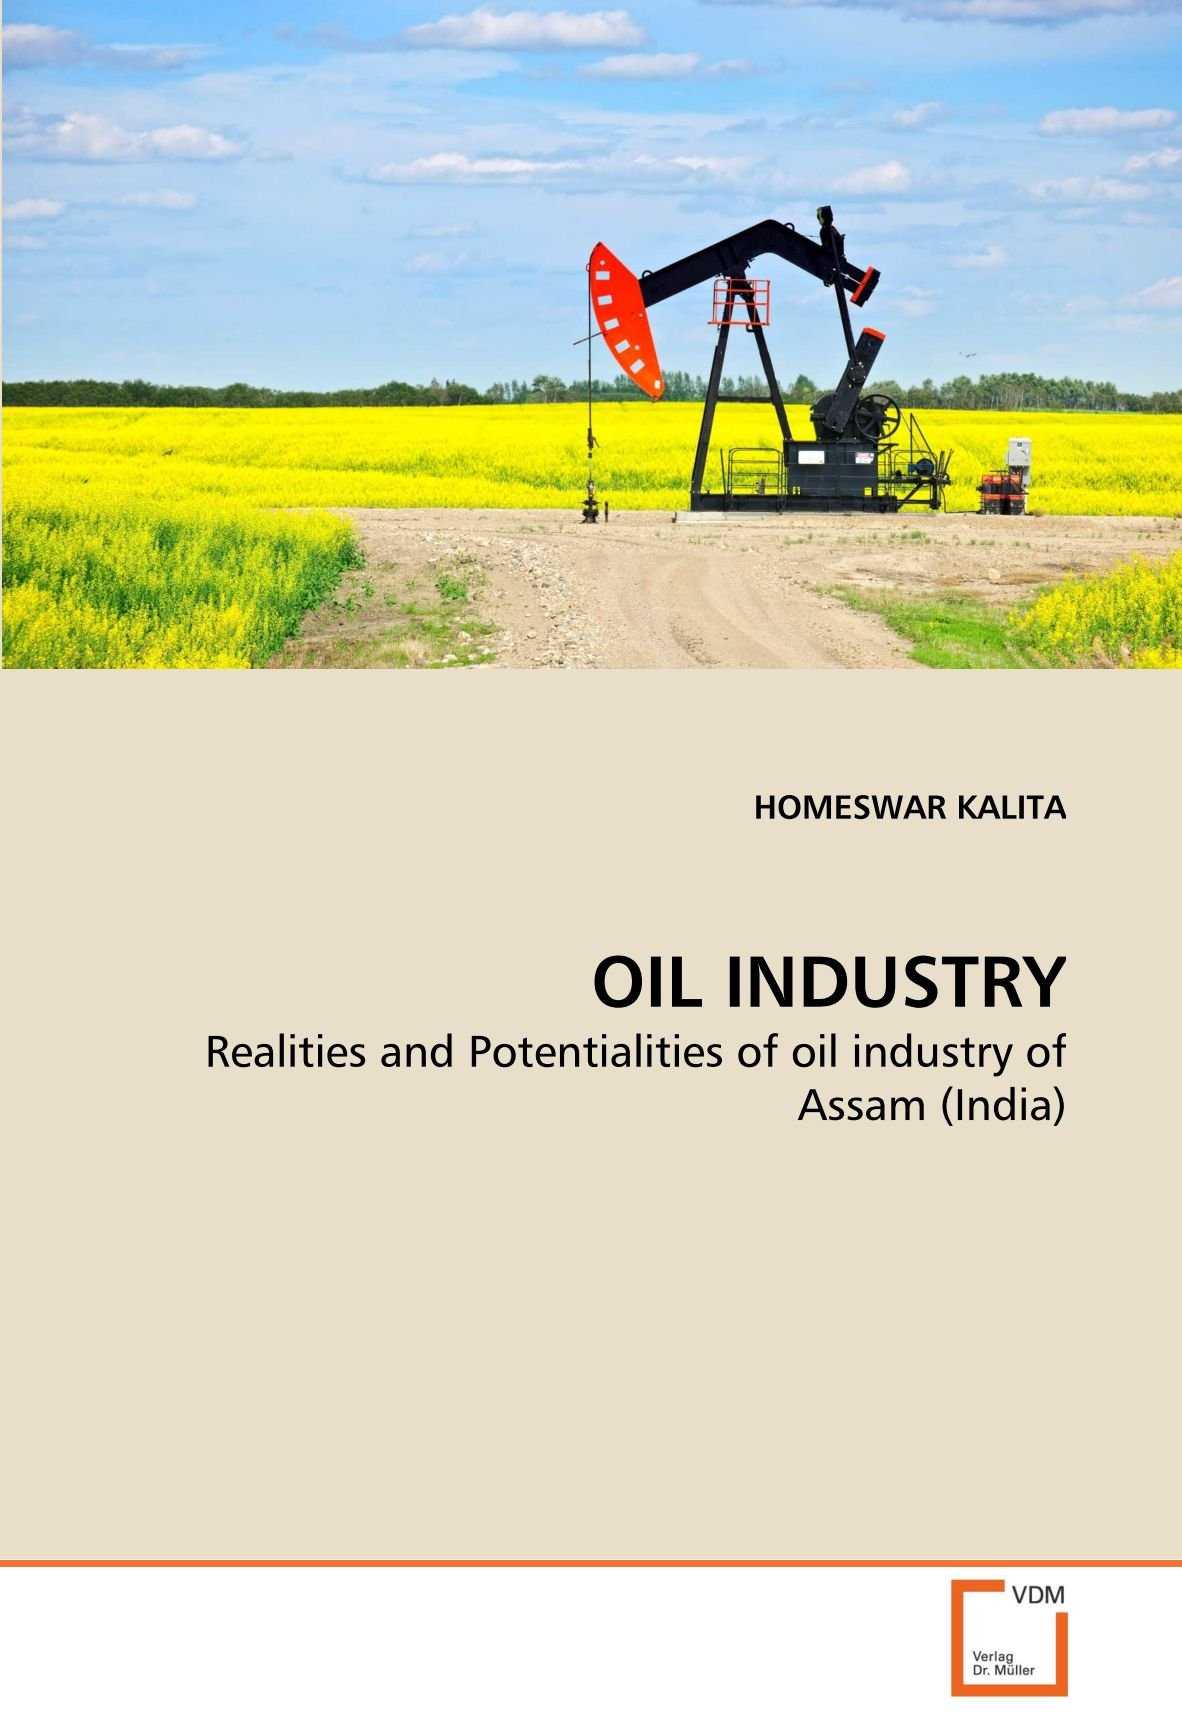 OIL INDUSTRY: Realities and Potentialities of oil industry of Assam (India) pdf